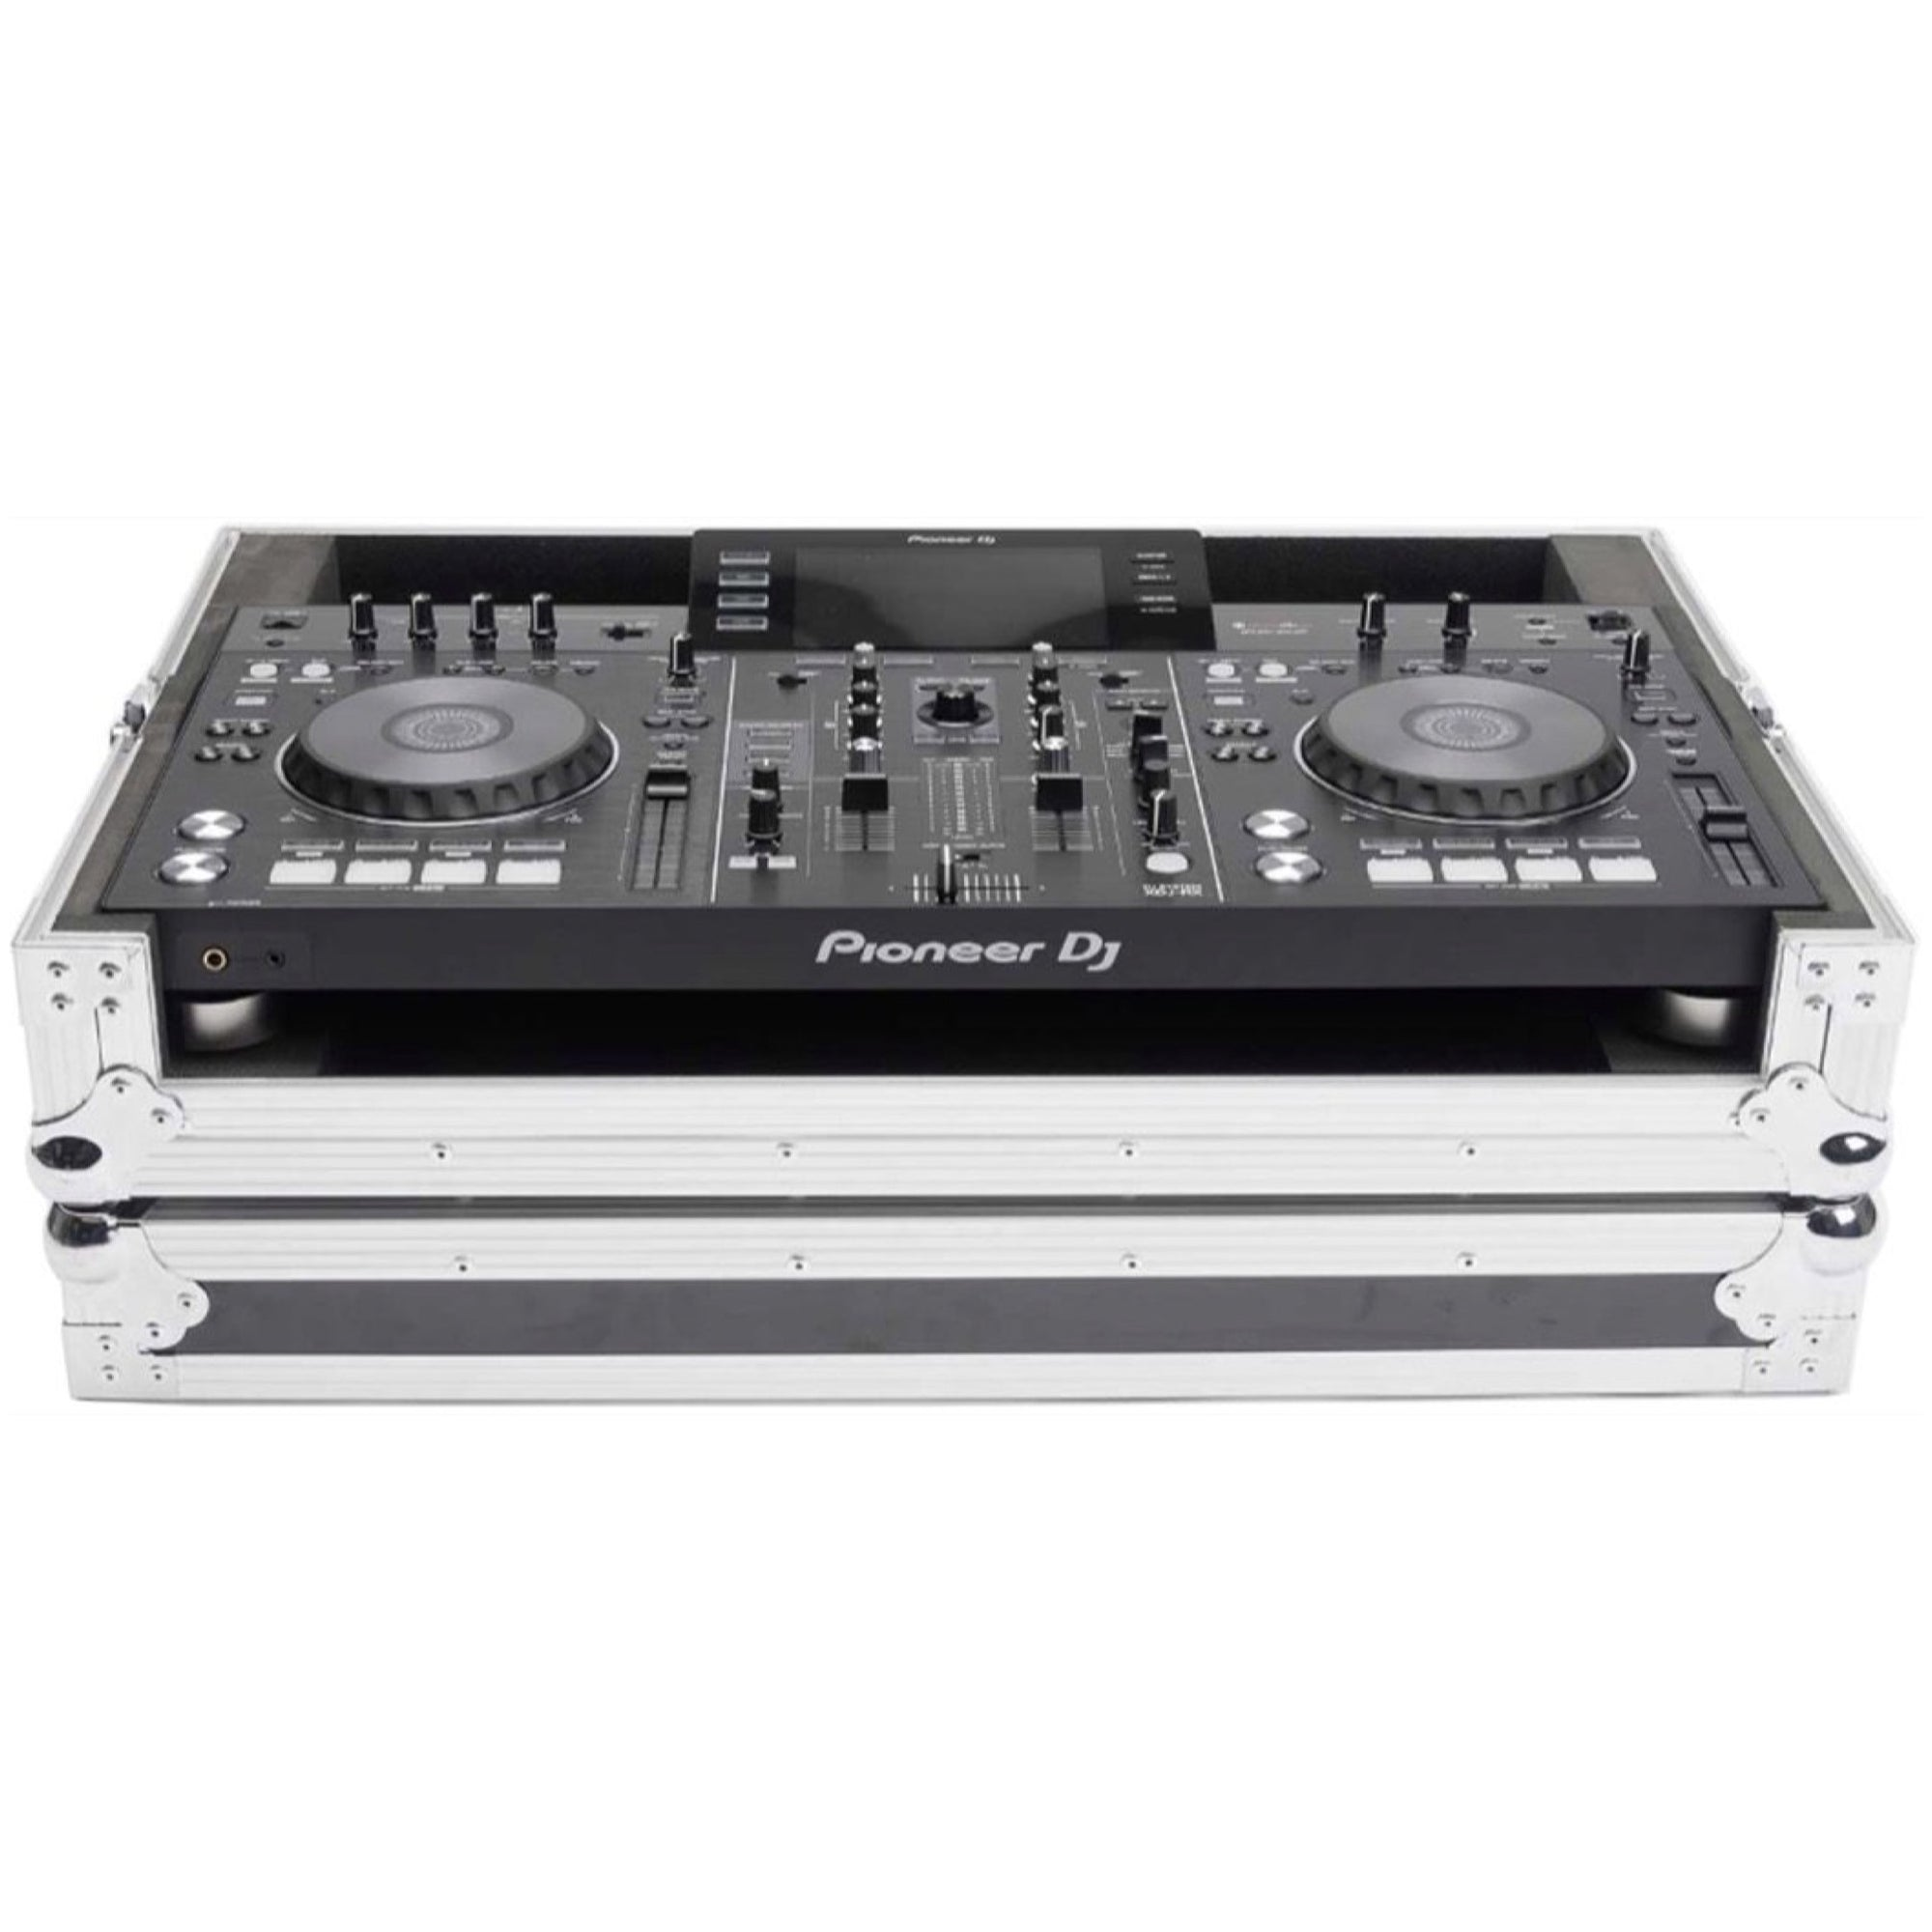 Magma DJ Controller Workstation for Pioneer XDJ-RX